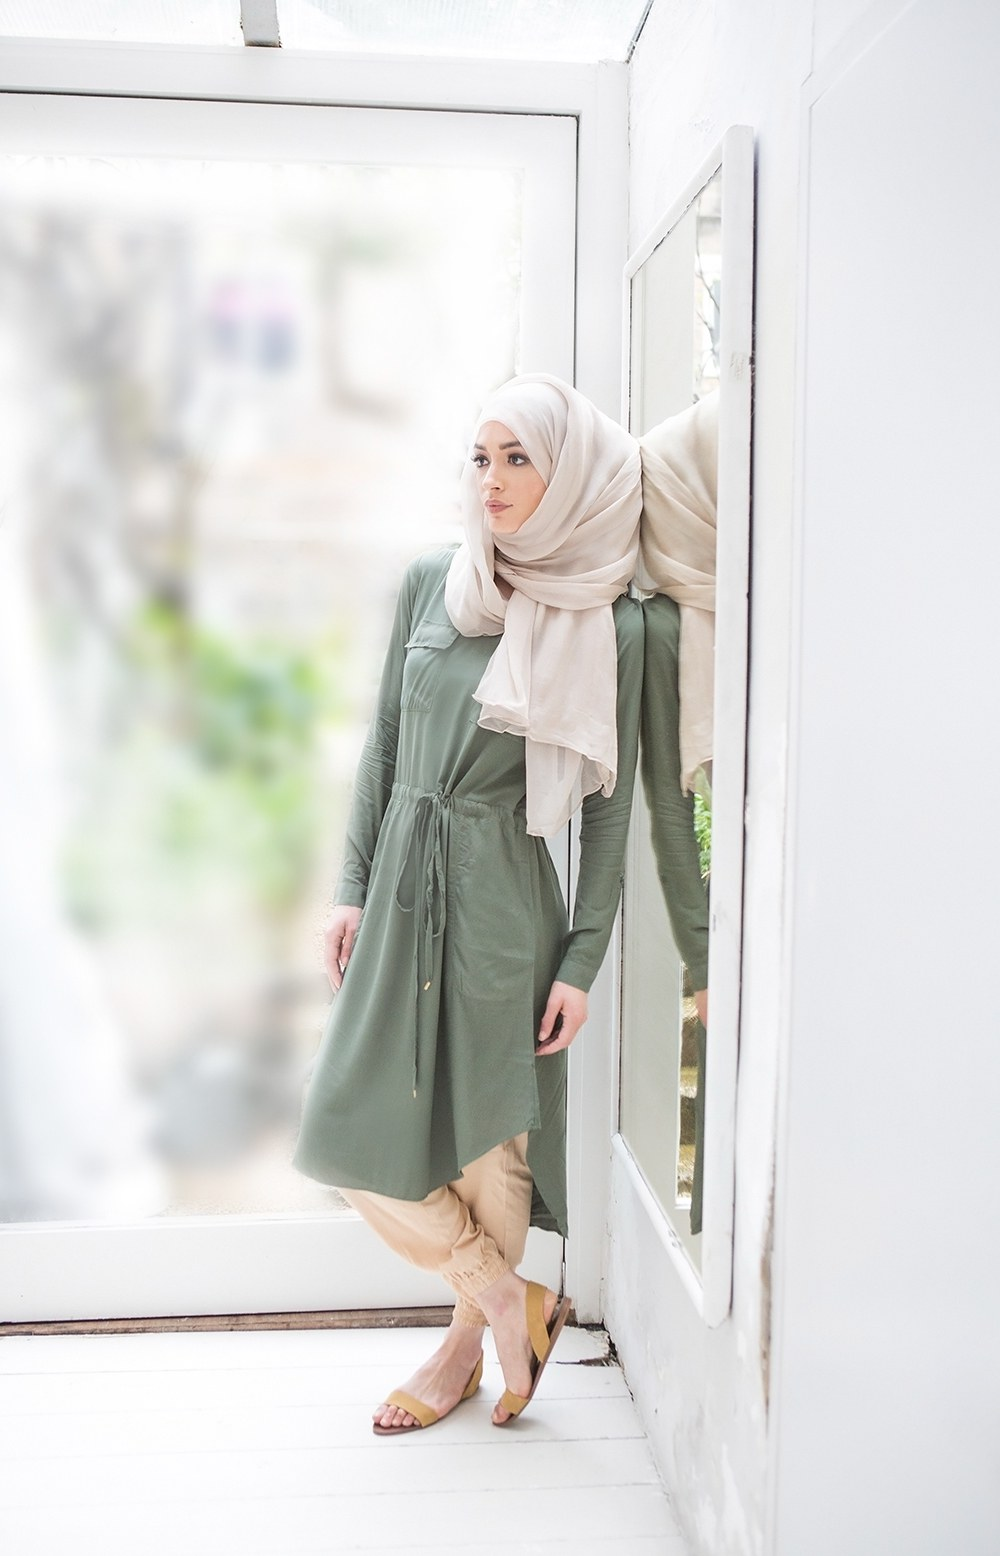 Model Trend Baju Lebaran T8dj 25 Trend Model Baju Muslim Lebaran 2018 Simple & Modis